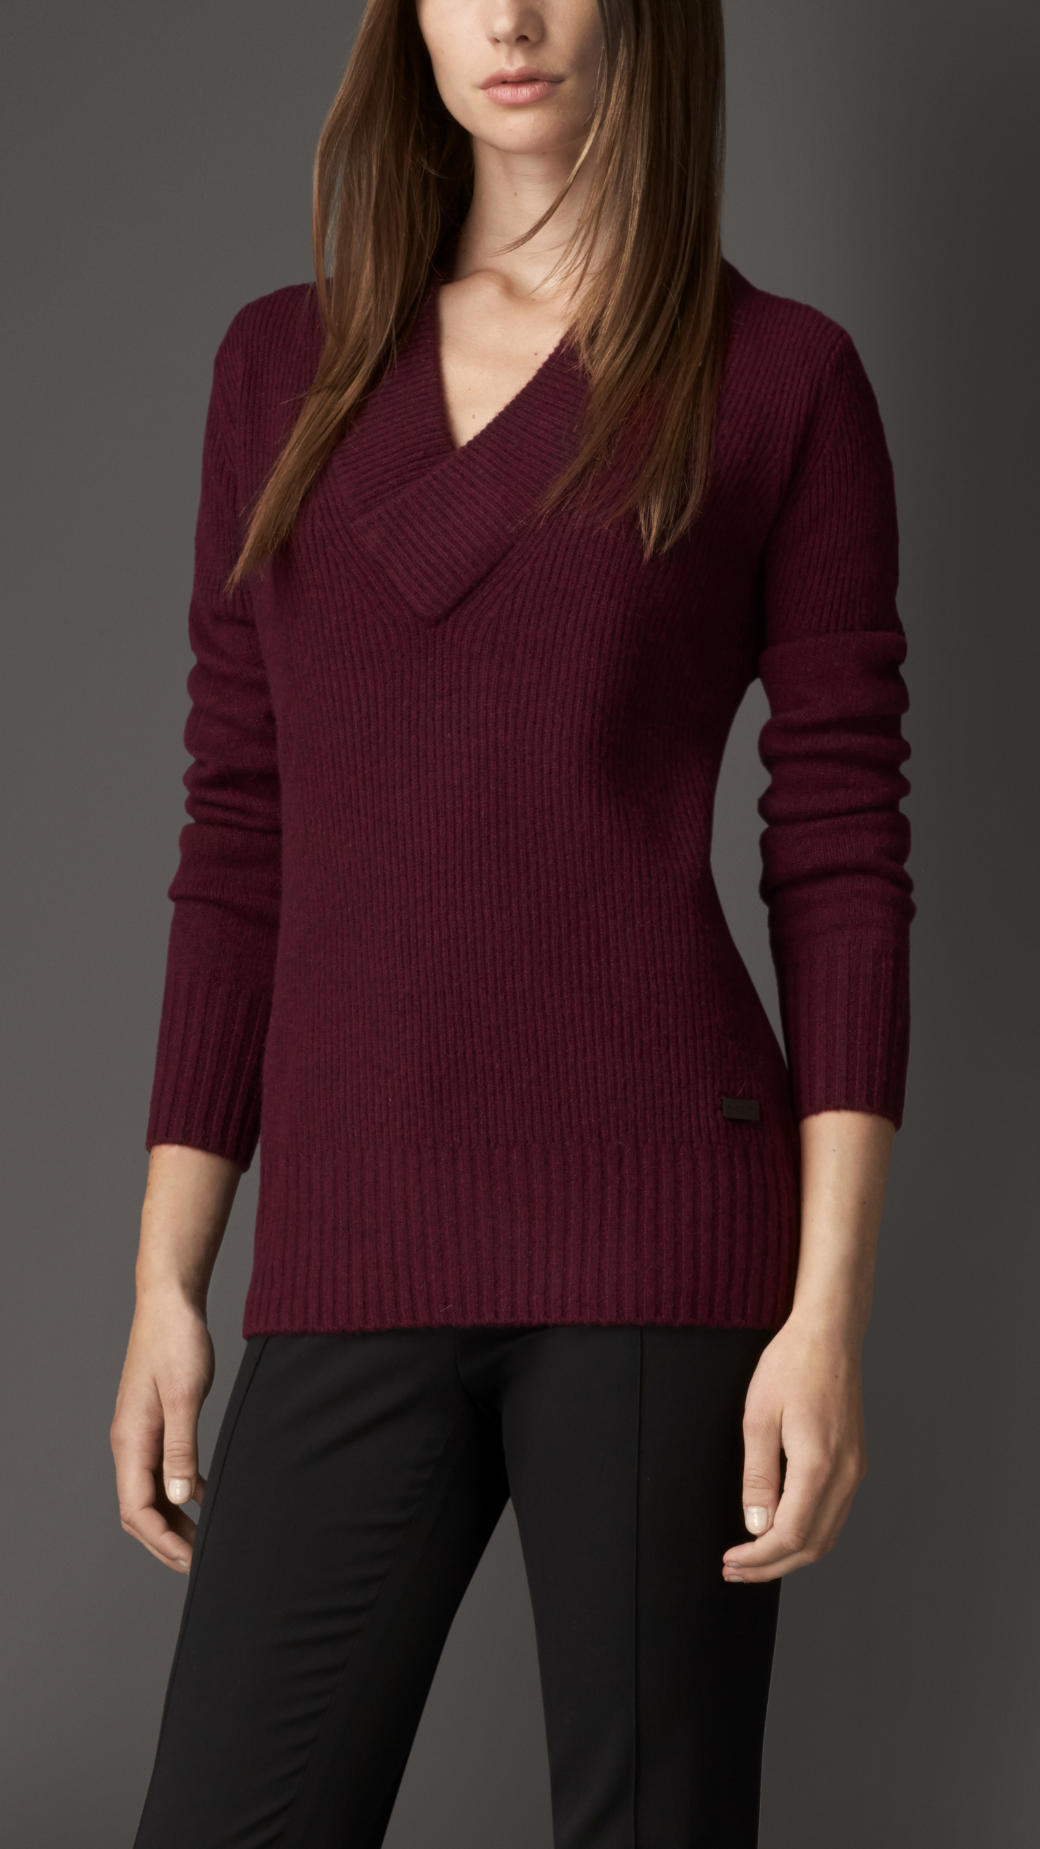 Burberry Ribbed V Neck Cashmere Sweater in Red | Lyst